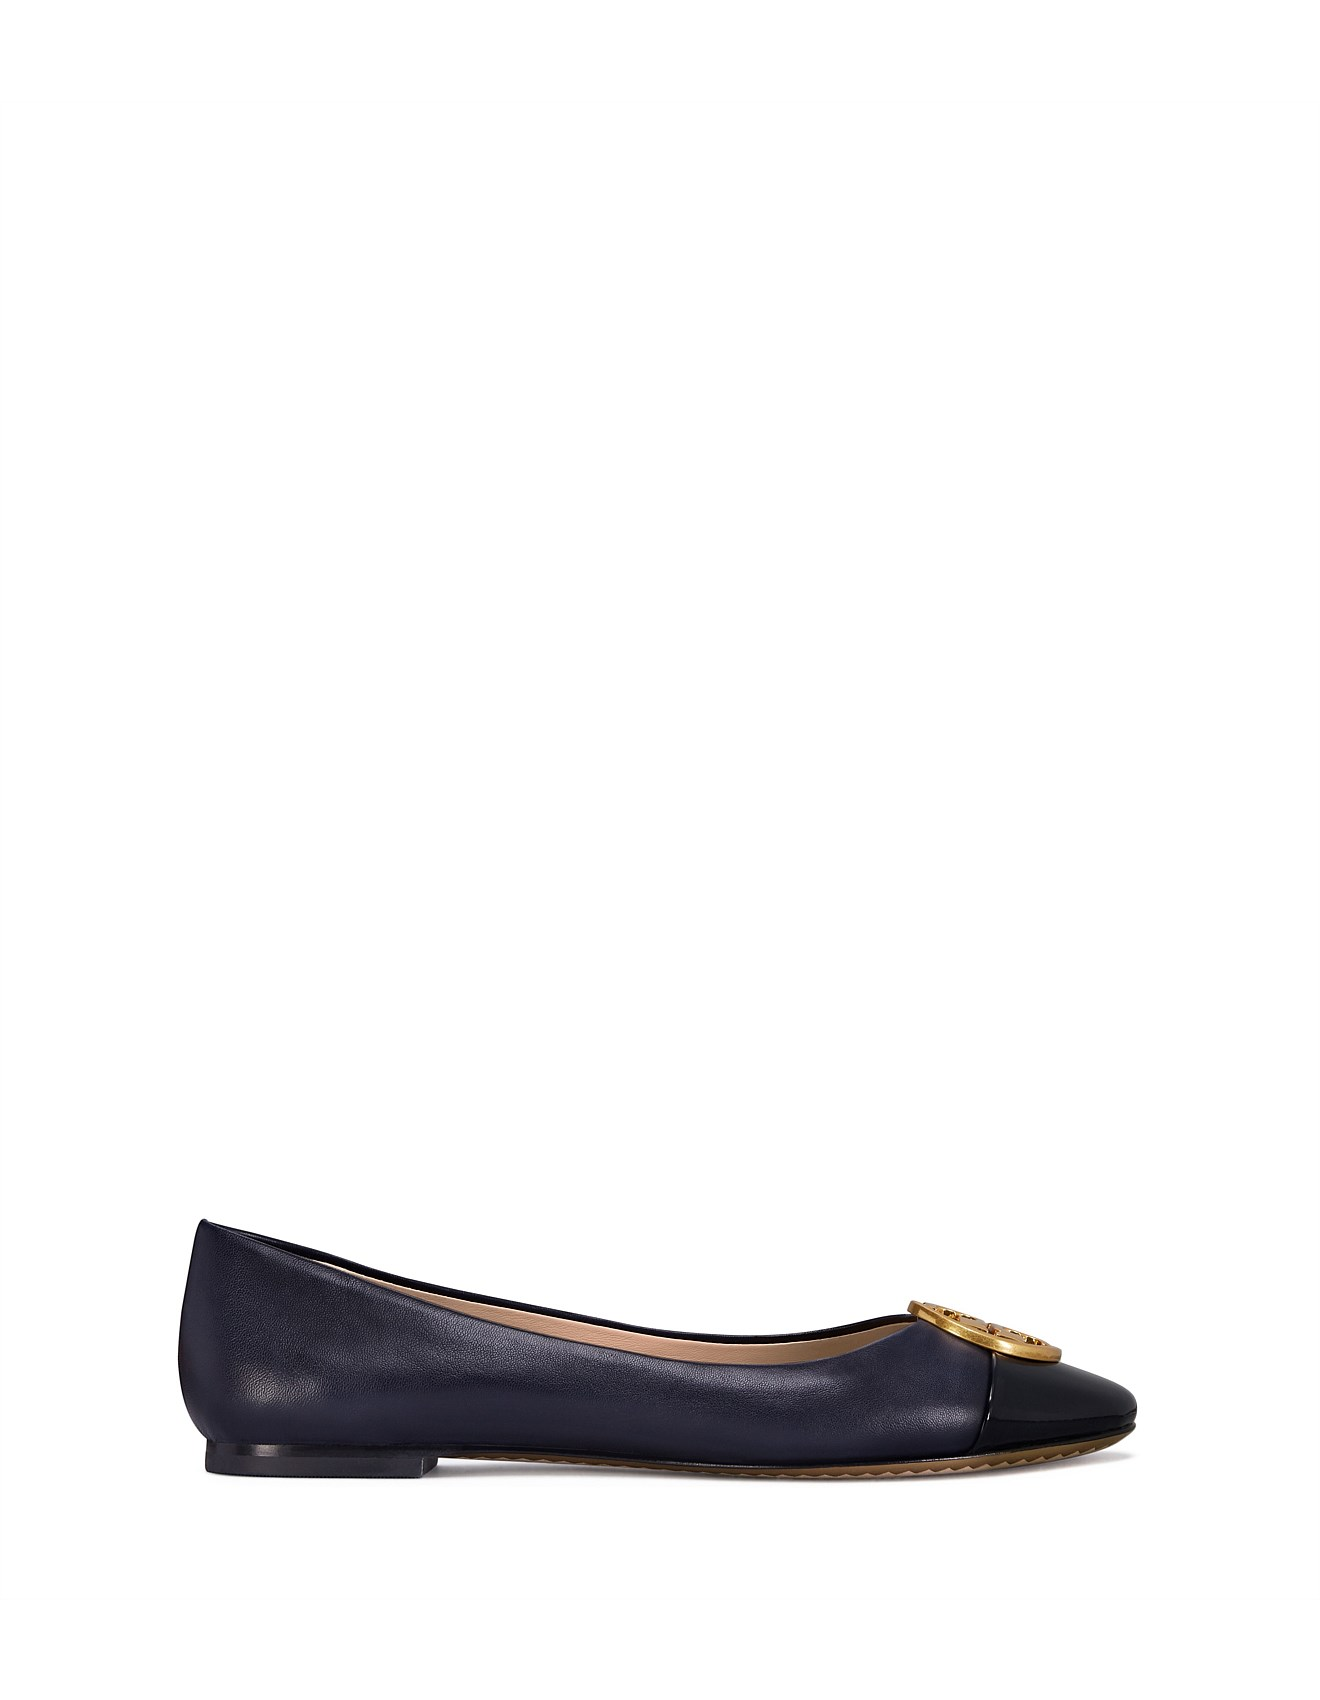 7ade288b4 Shoes - Chelsea Cap-Toe Ballet Nappa Leather Patent Leather